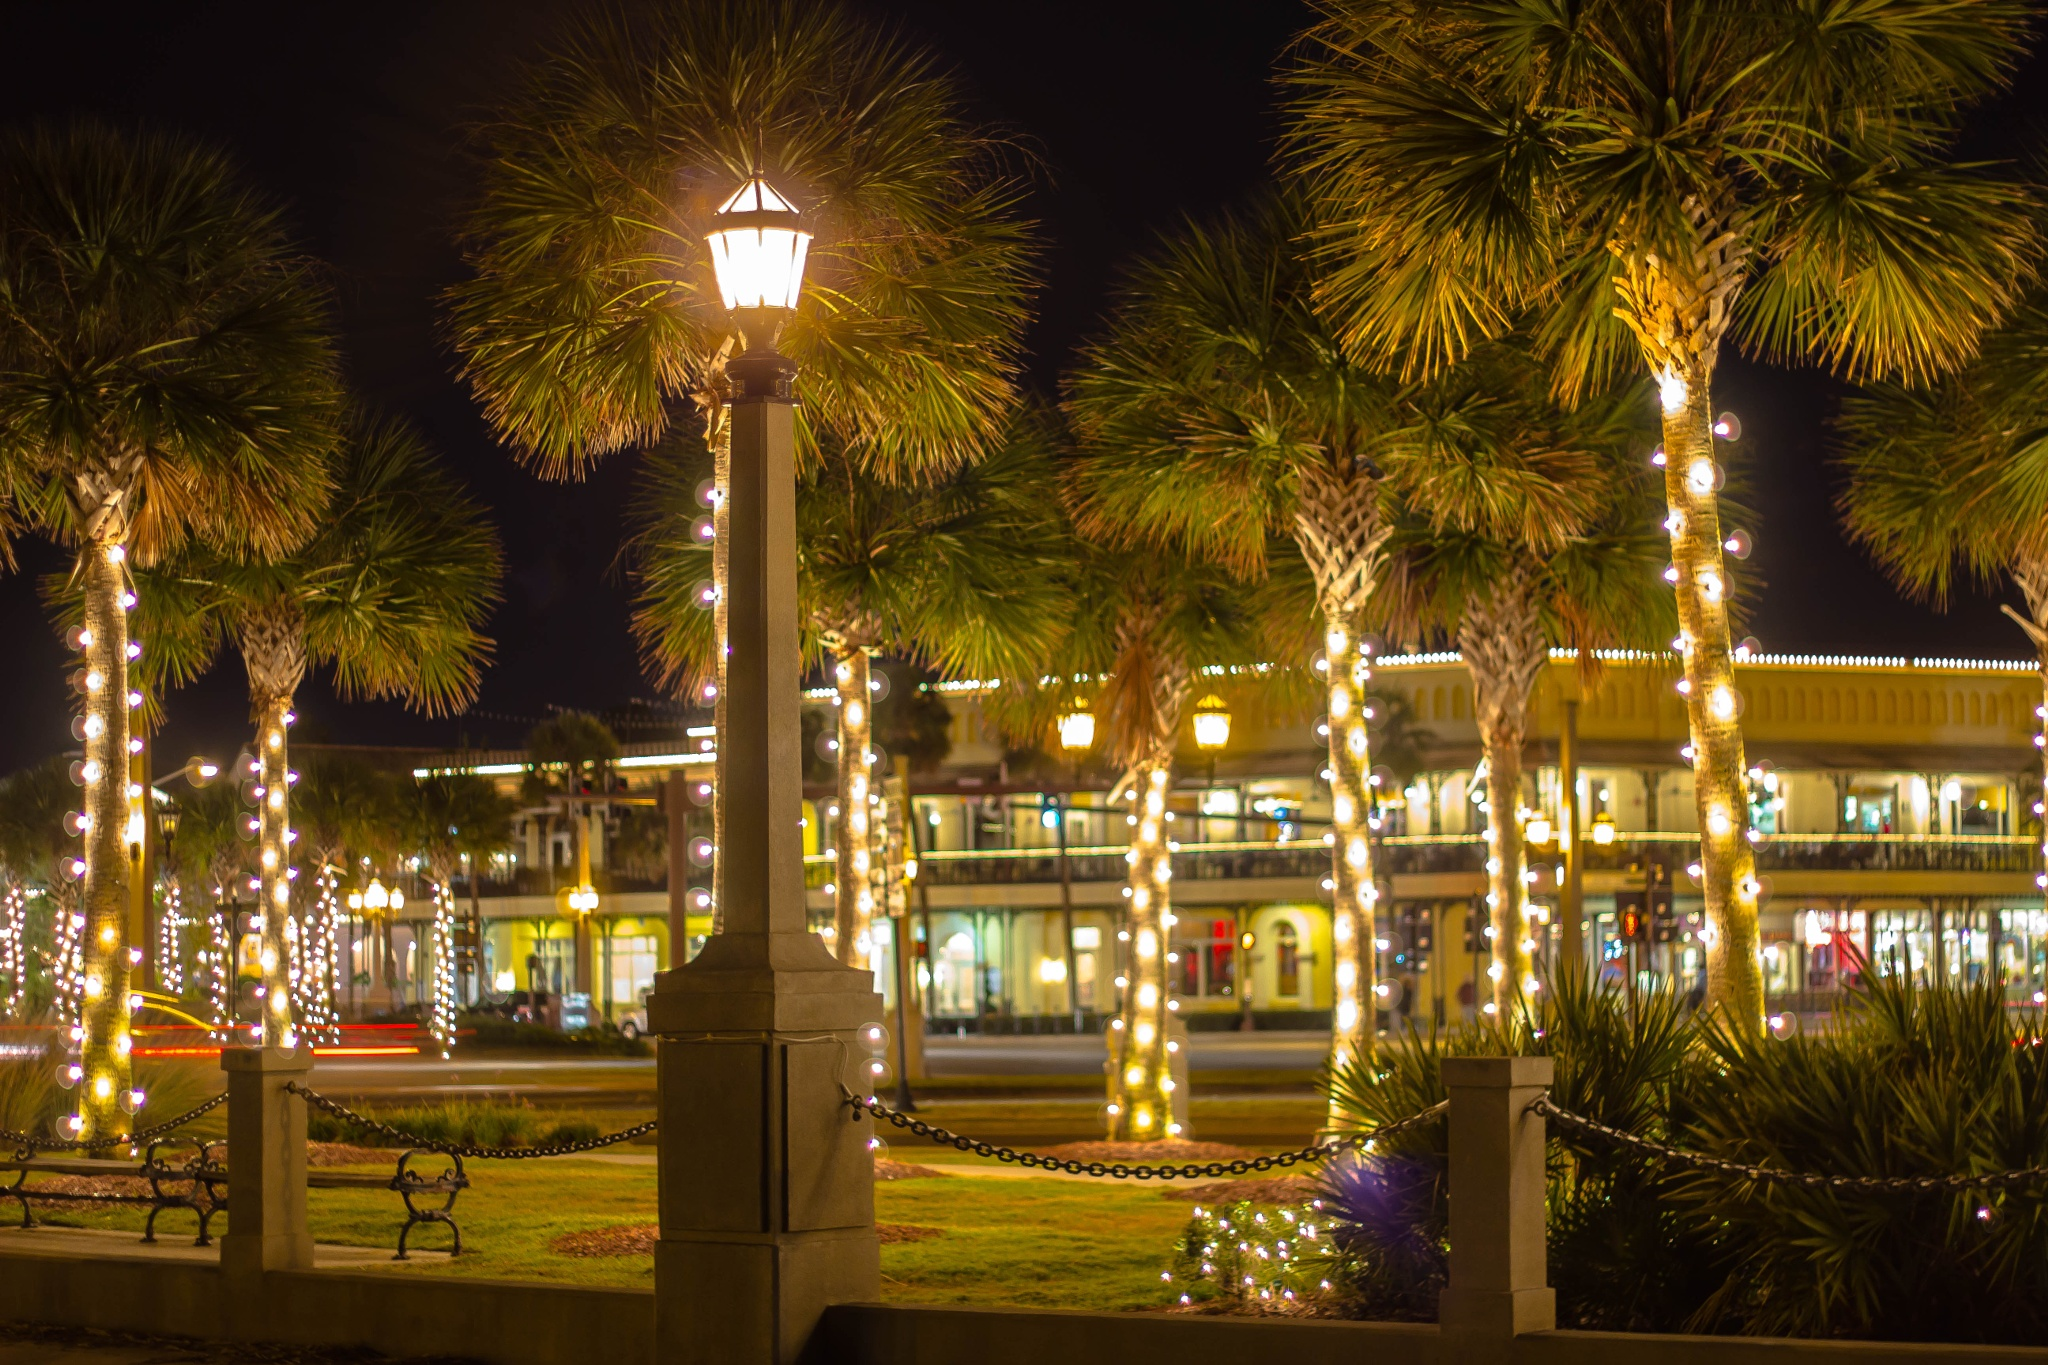 The Christmas Lights of Olde St. Augustine by Peter Cavaliere